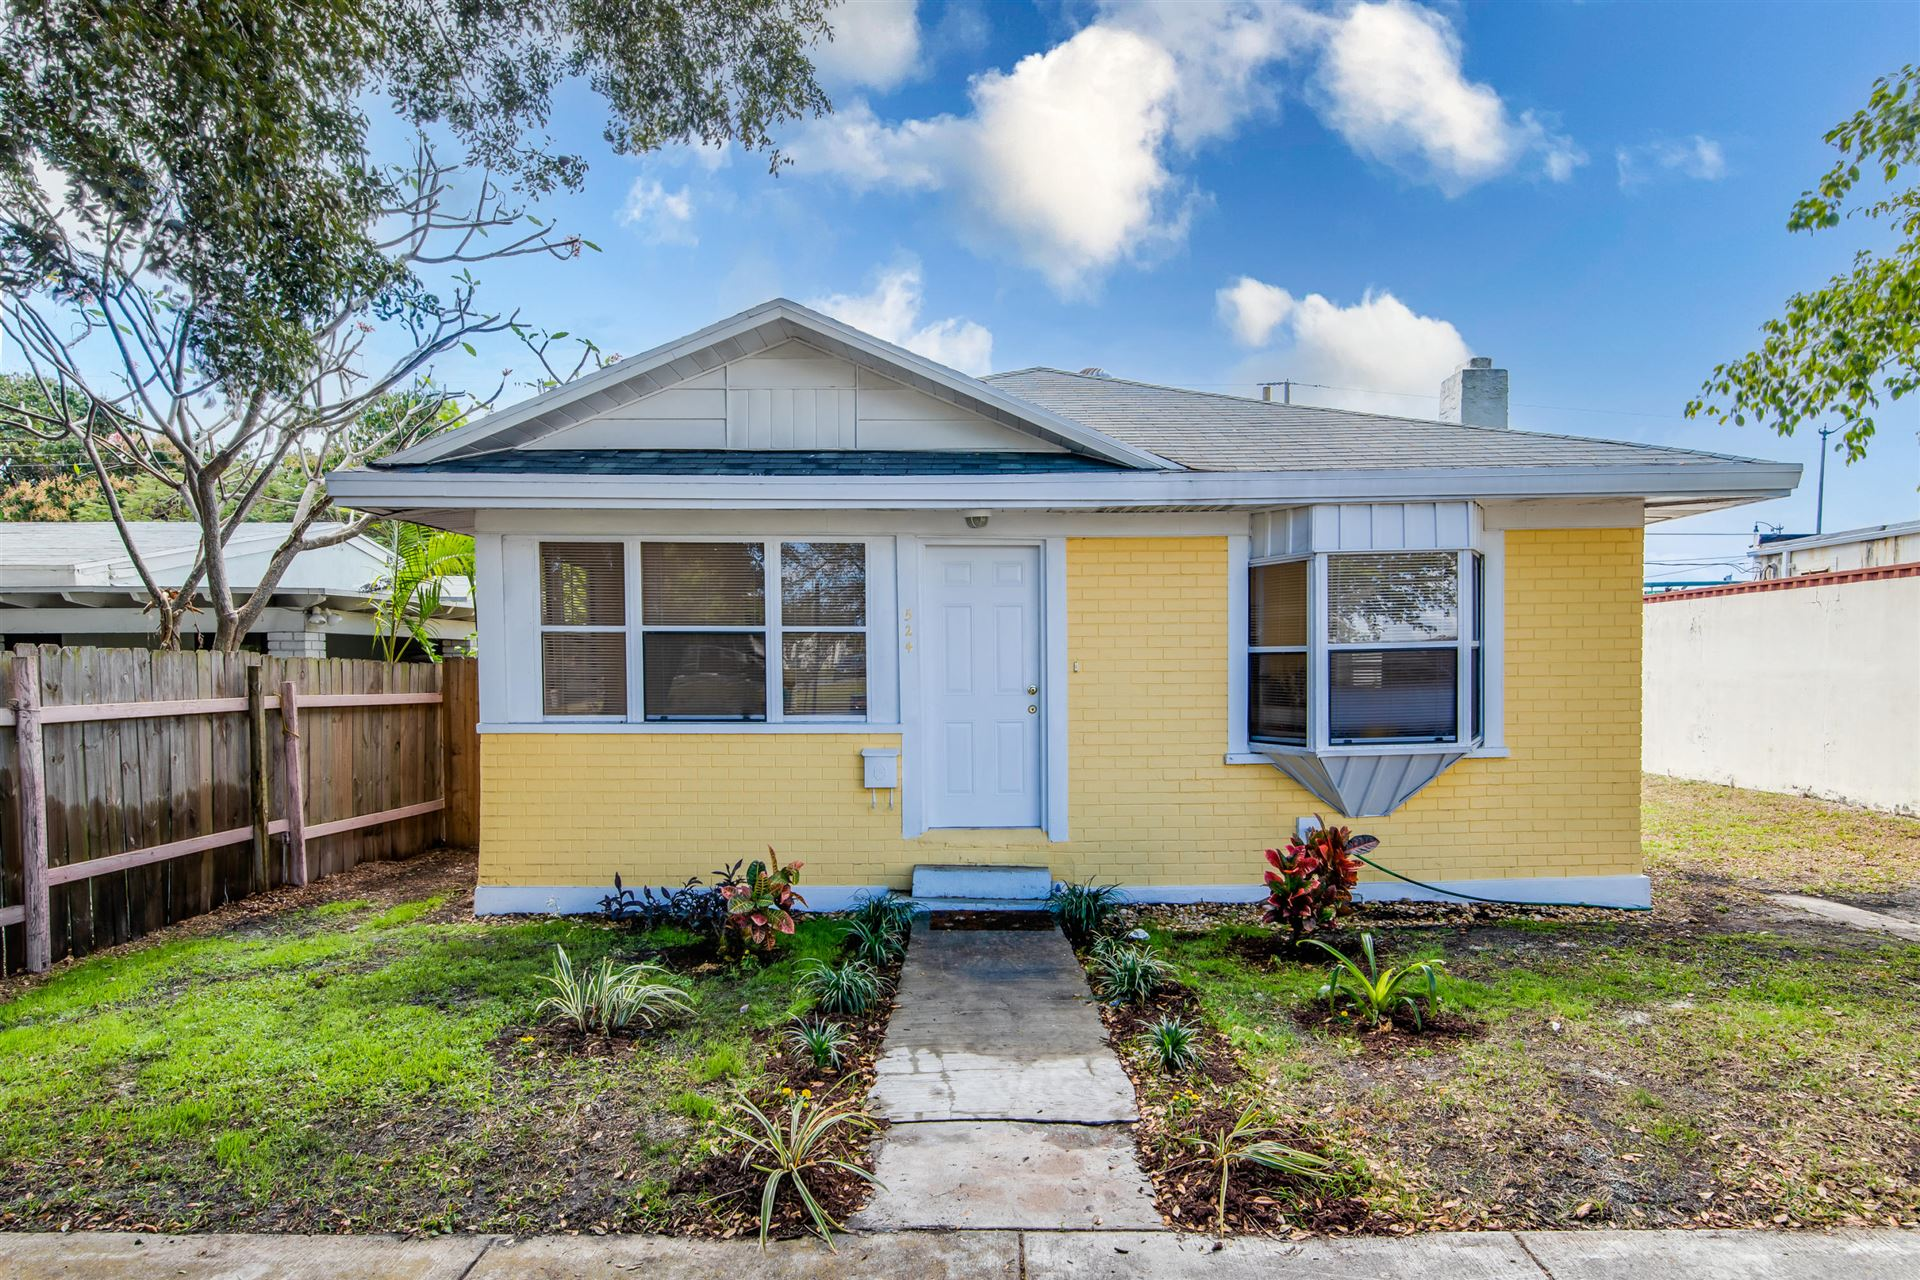 524 55th Street, West Palm Beach, FL 33407 - MLS#: RX-10695862